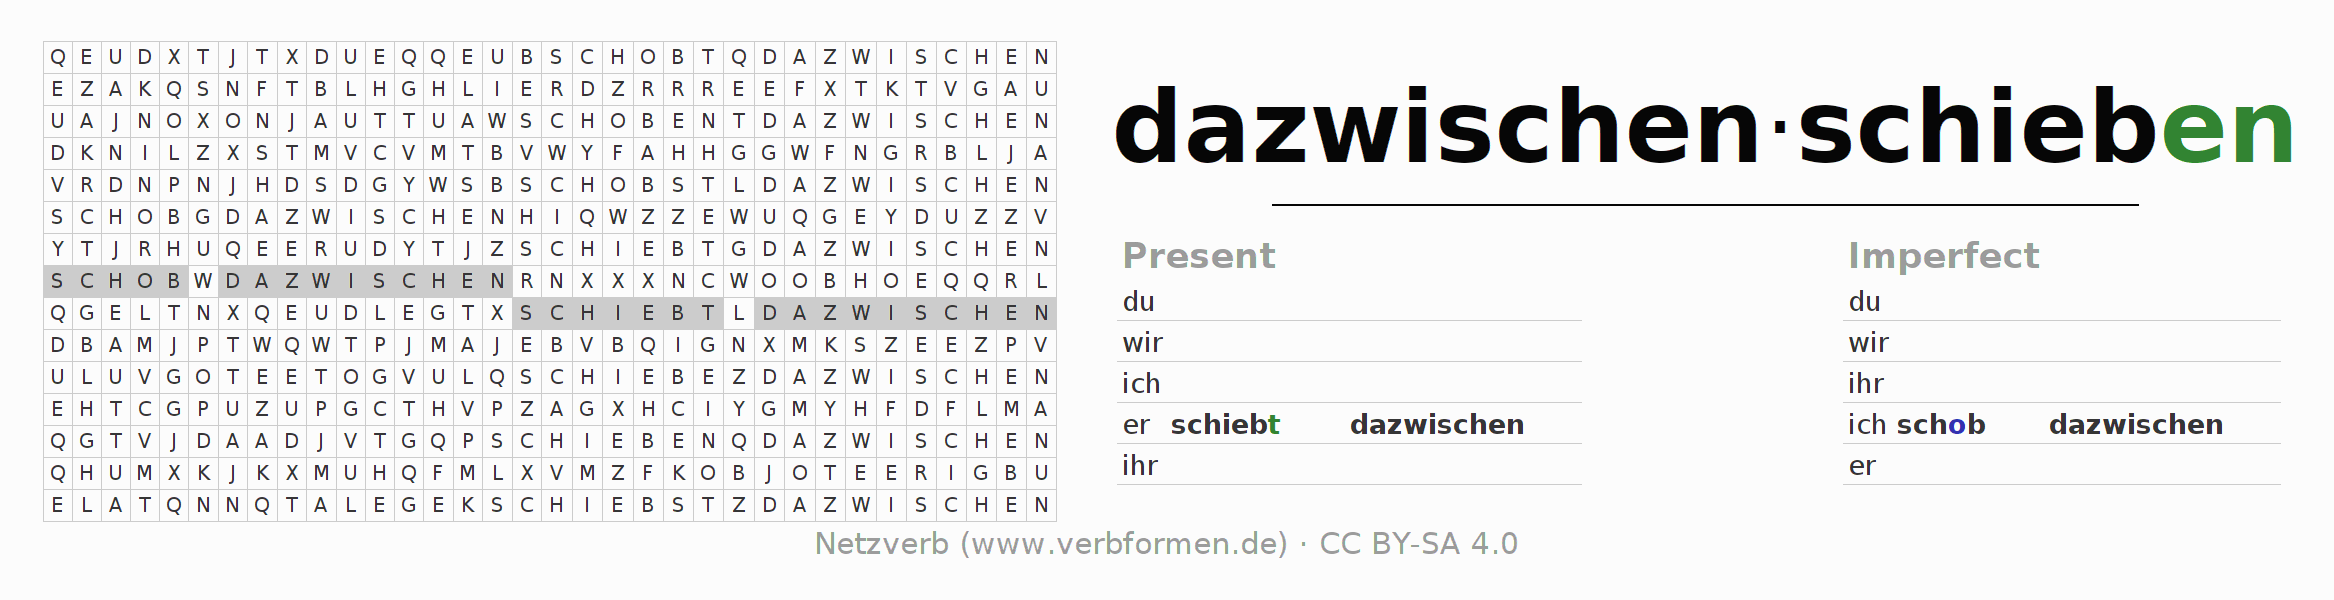 Word search puzzle for the conjugation of the verb dazwischenschieben